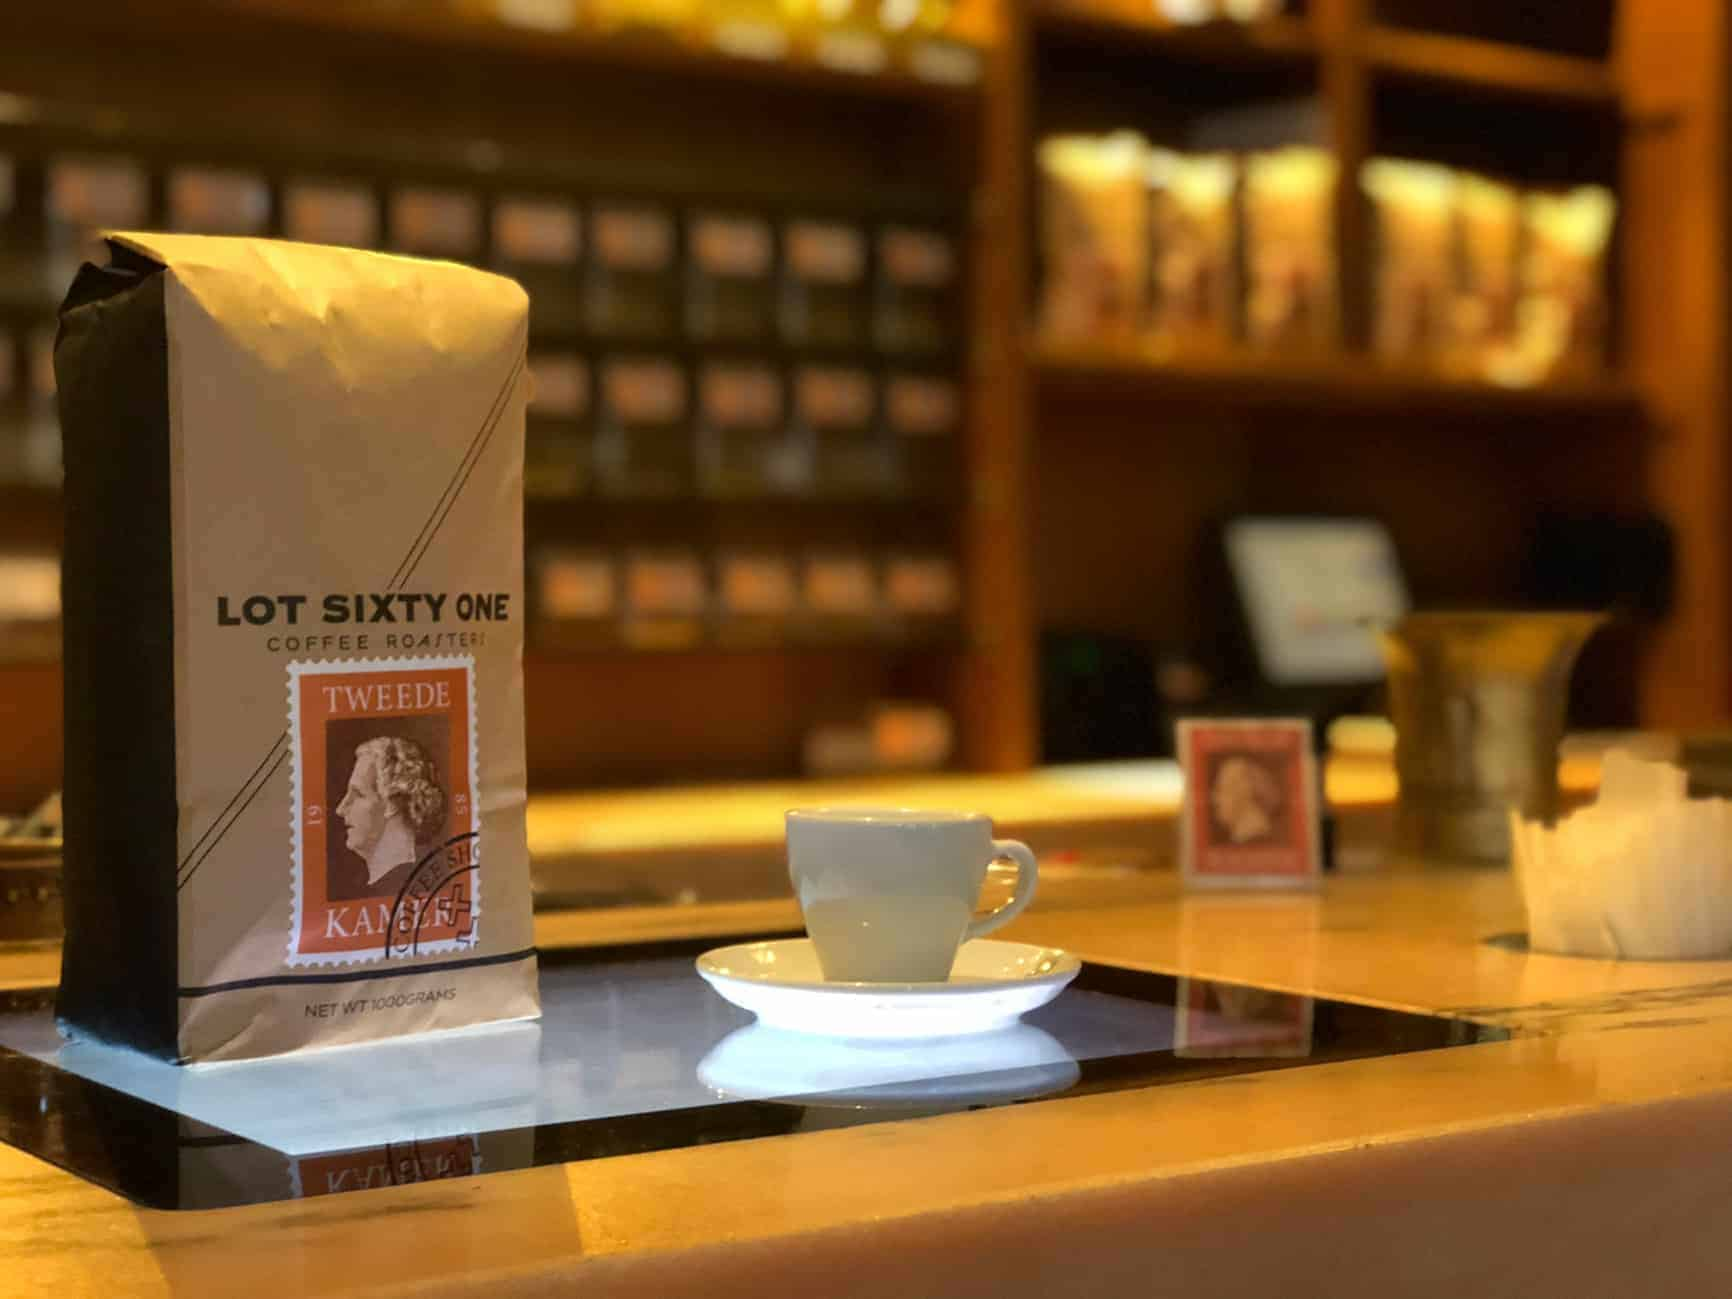 Lot Sixty One Coffee as available from the Tweede Kamer Coffeeshop